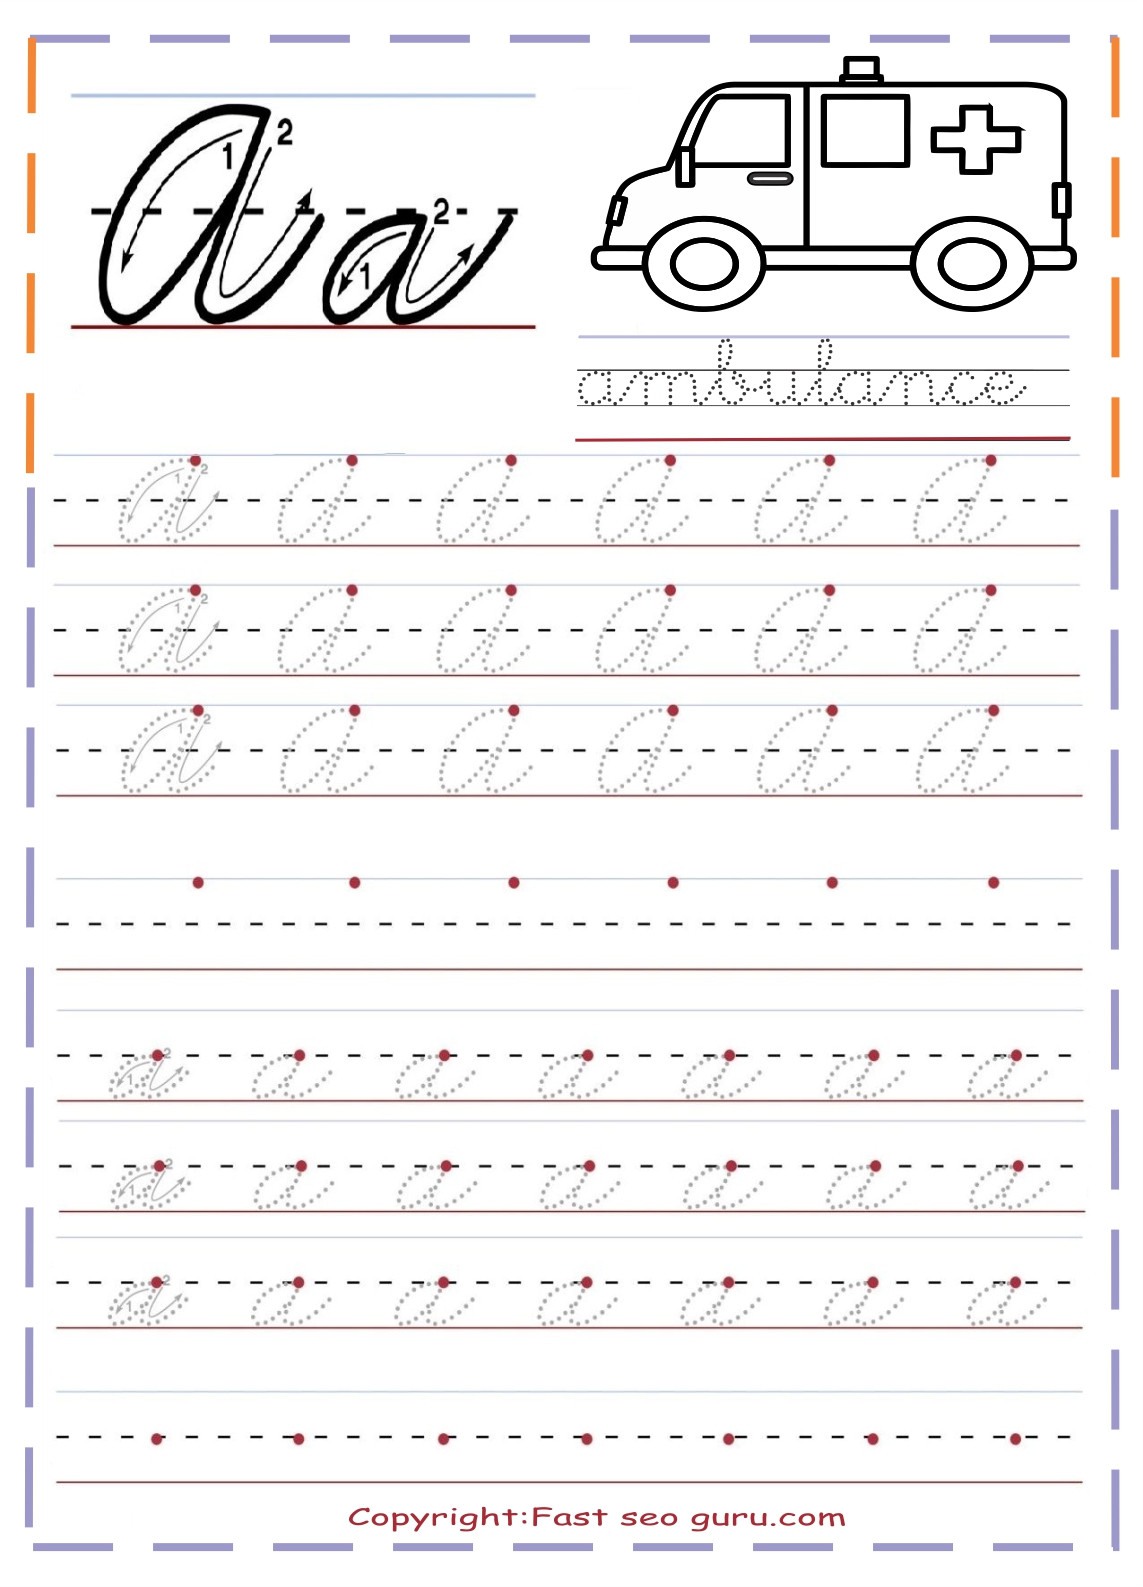 Printable Cursive Writing Worksheets Pdf Cursive Handwriting Alphabet Worksheets